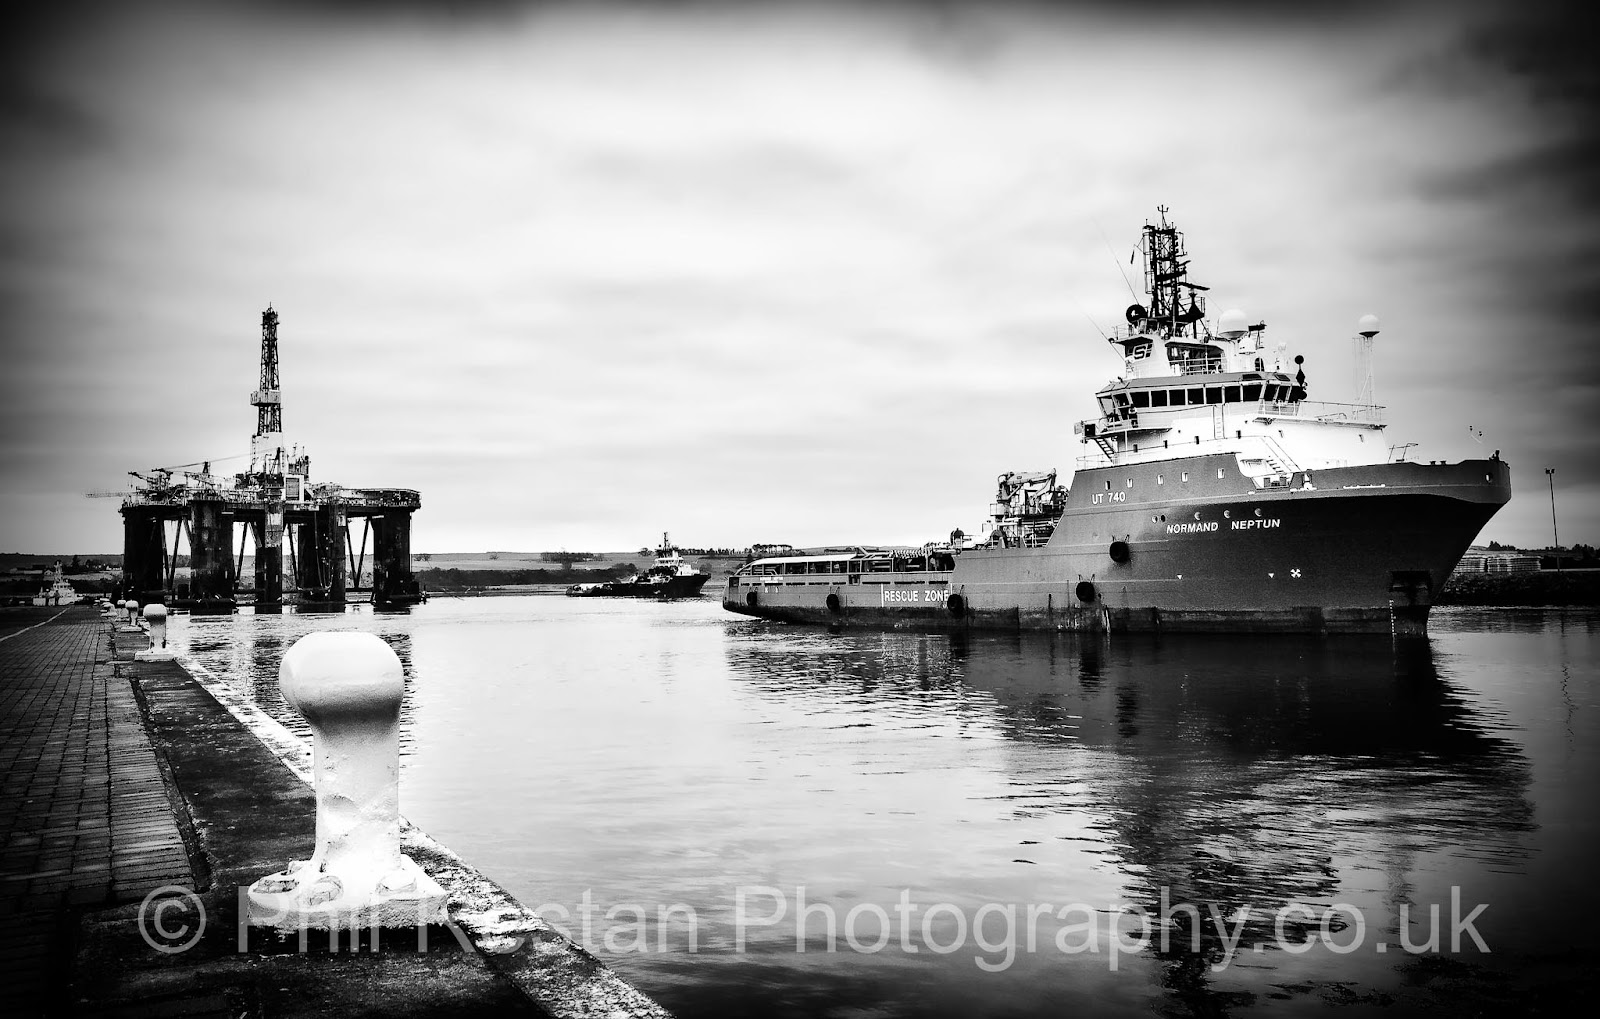 Photos of Normand Neptun and Sedco 712 alongside Queens Dock, Invergordon